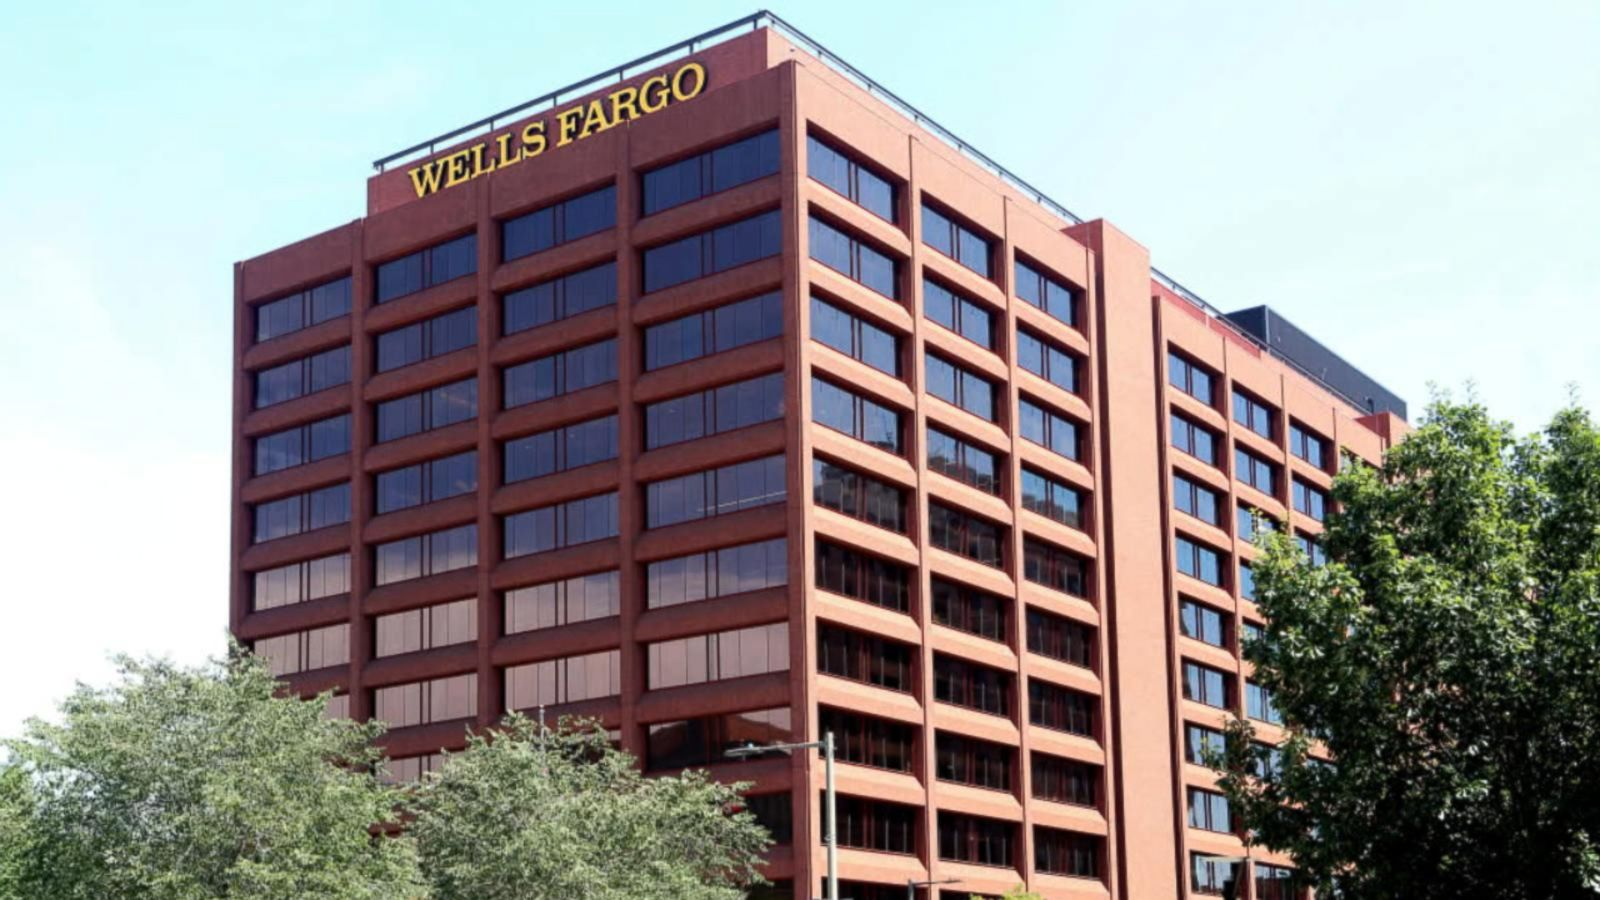 Wells Fargo Picture